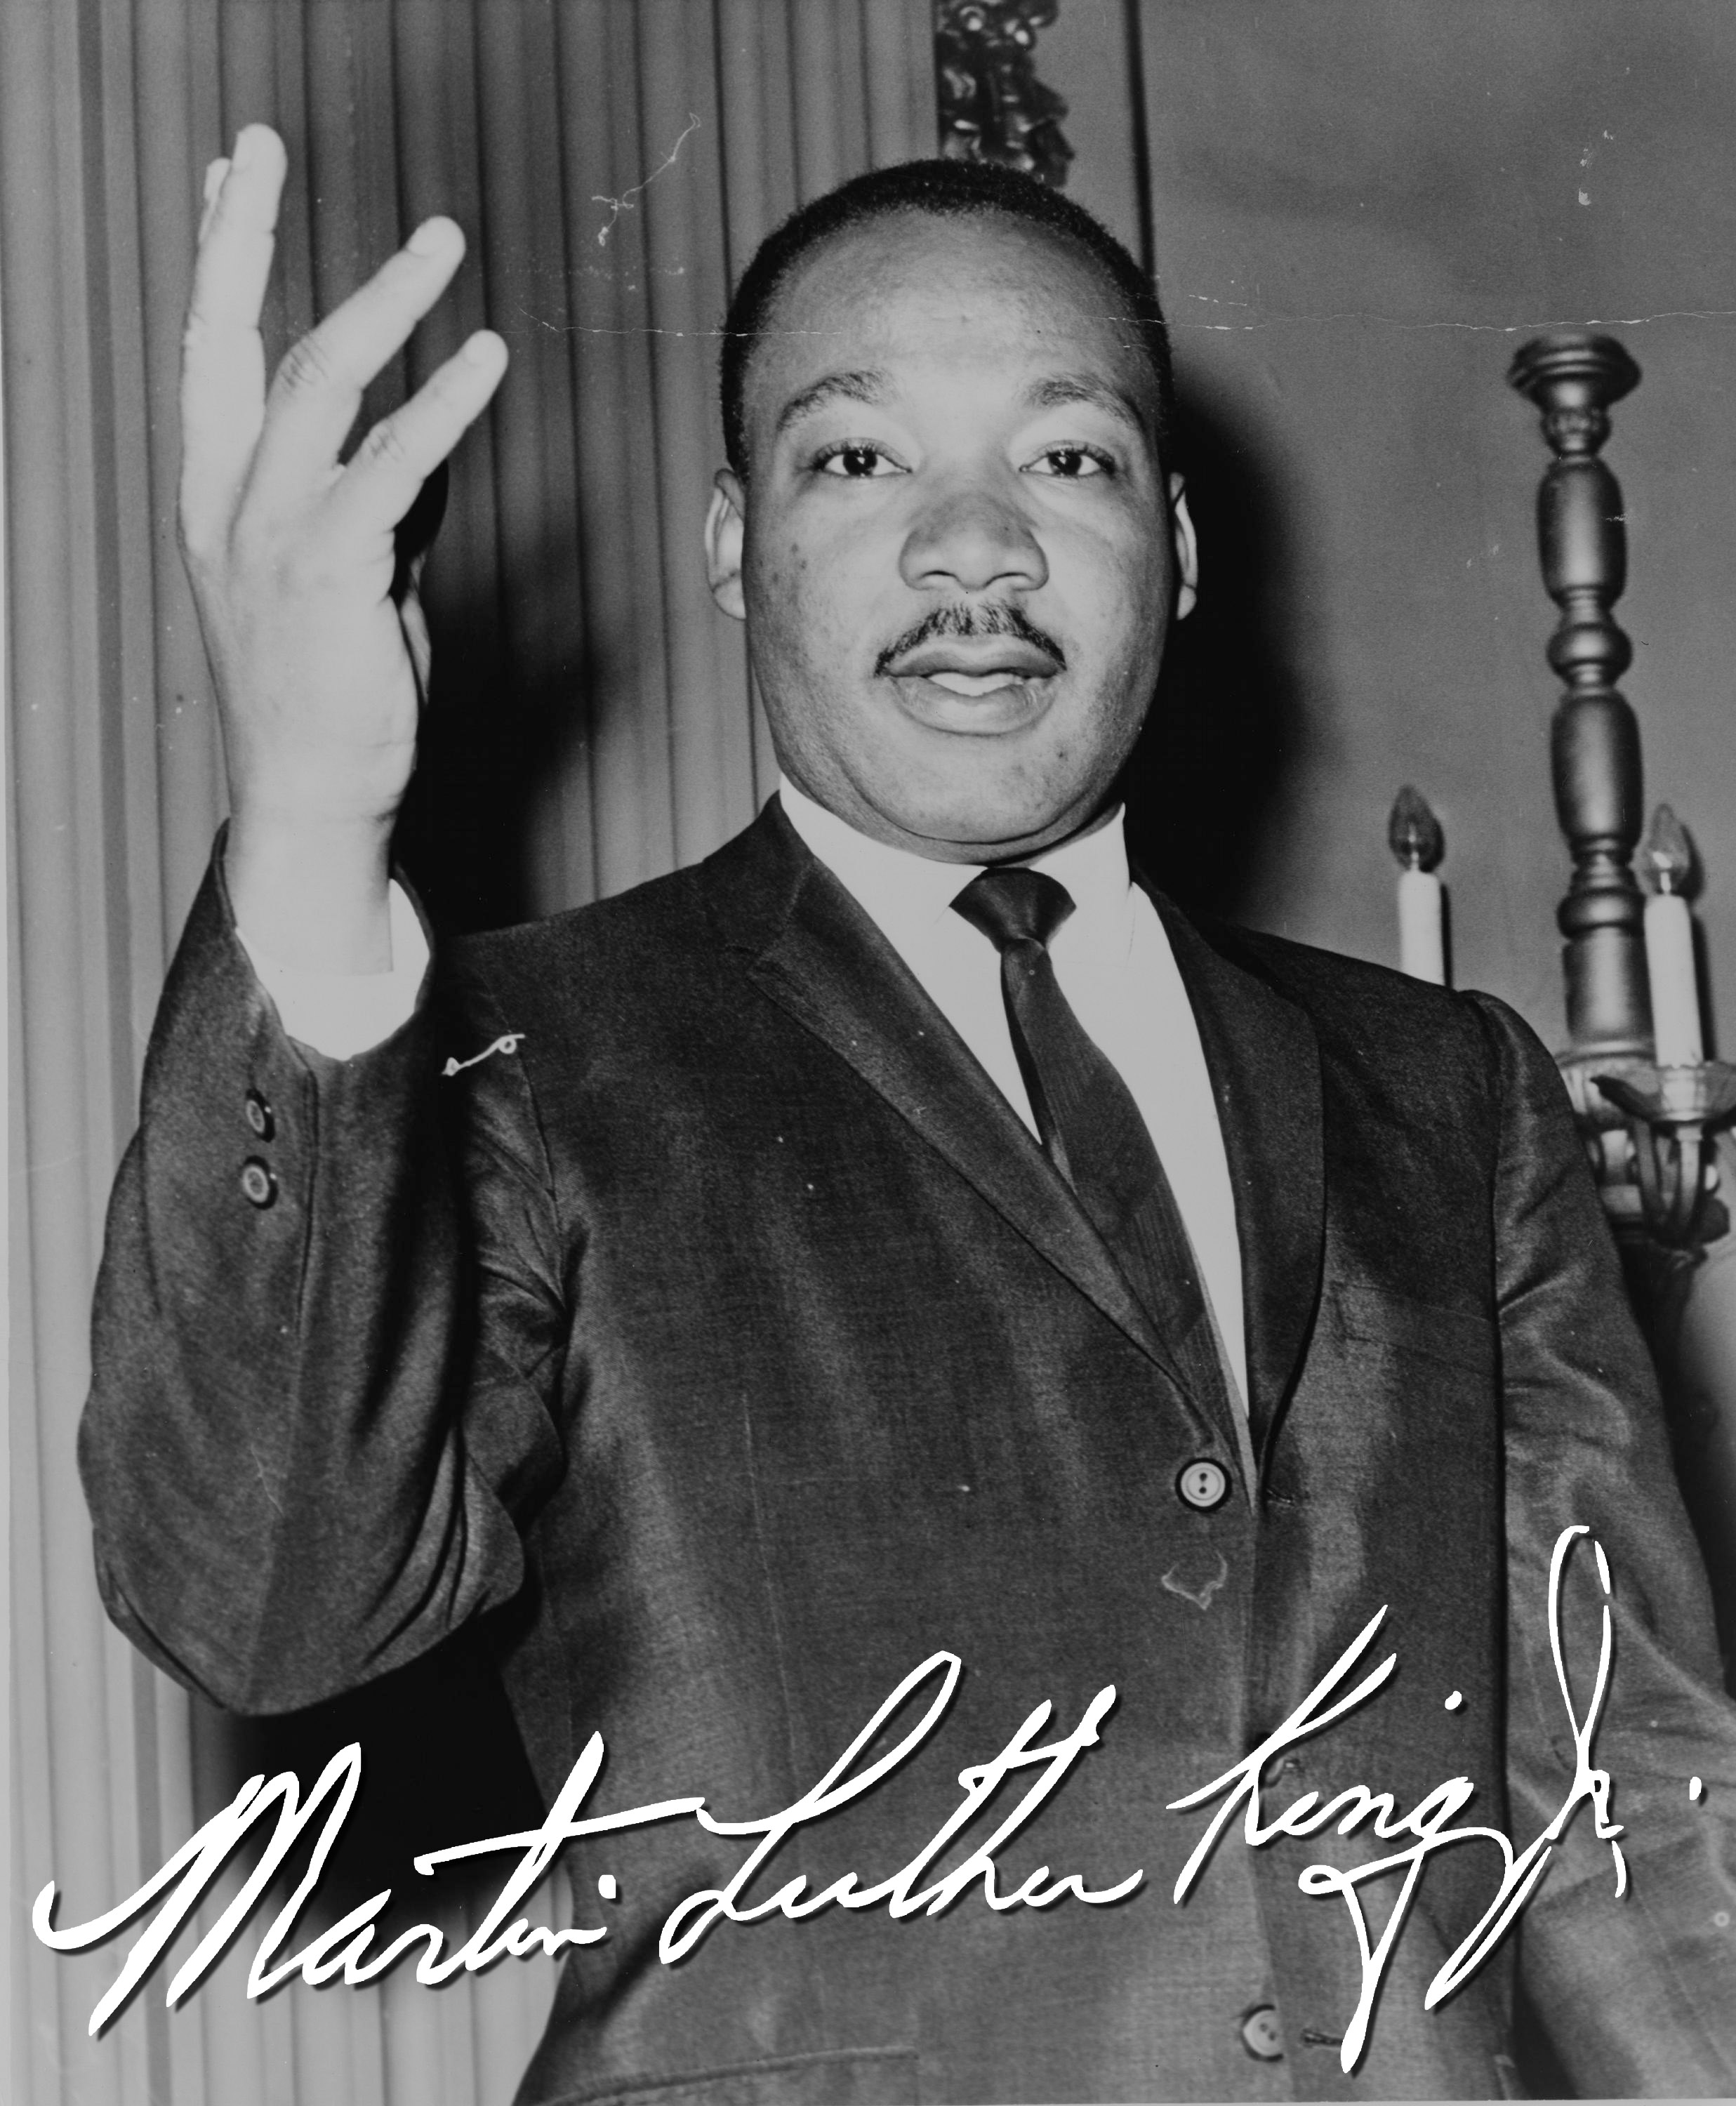 """second grade essays on martin luther king jr In a speech at cornell college in mount vernon, iowa, on oct 15, 1962, dr martin luther king jr expressed, """"i am convinced that men hate each other because they fear each other."""